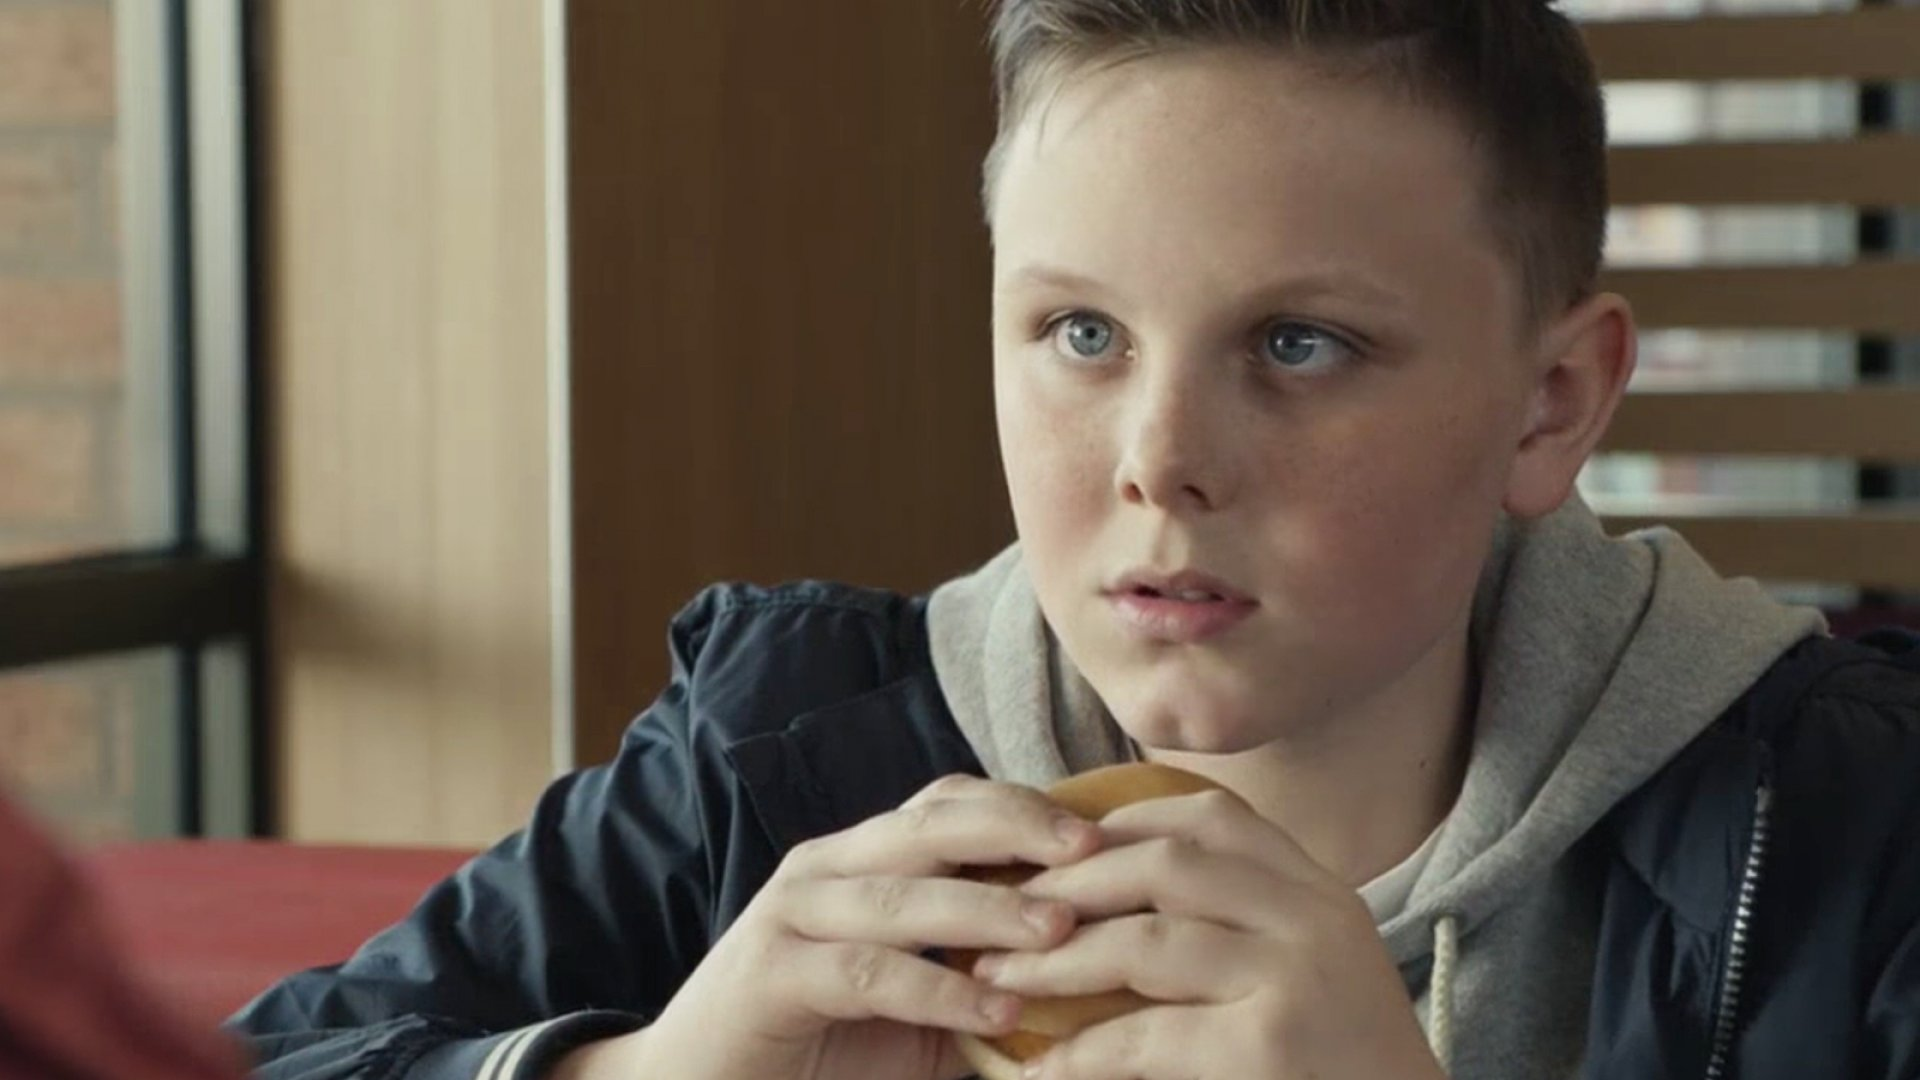 McDonald's Runs an Ad That You Absolutely Will Not Believe